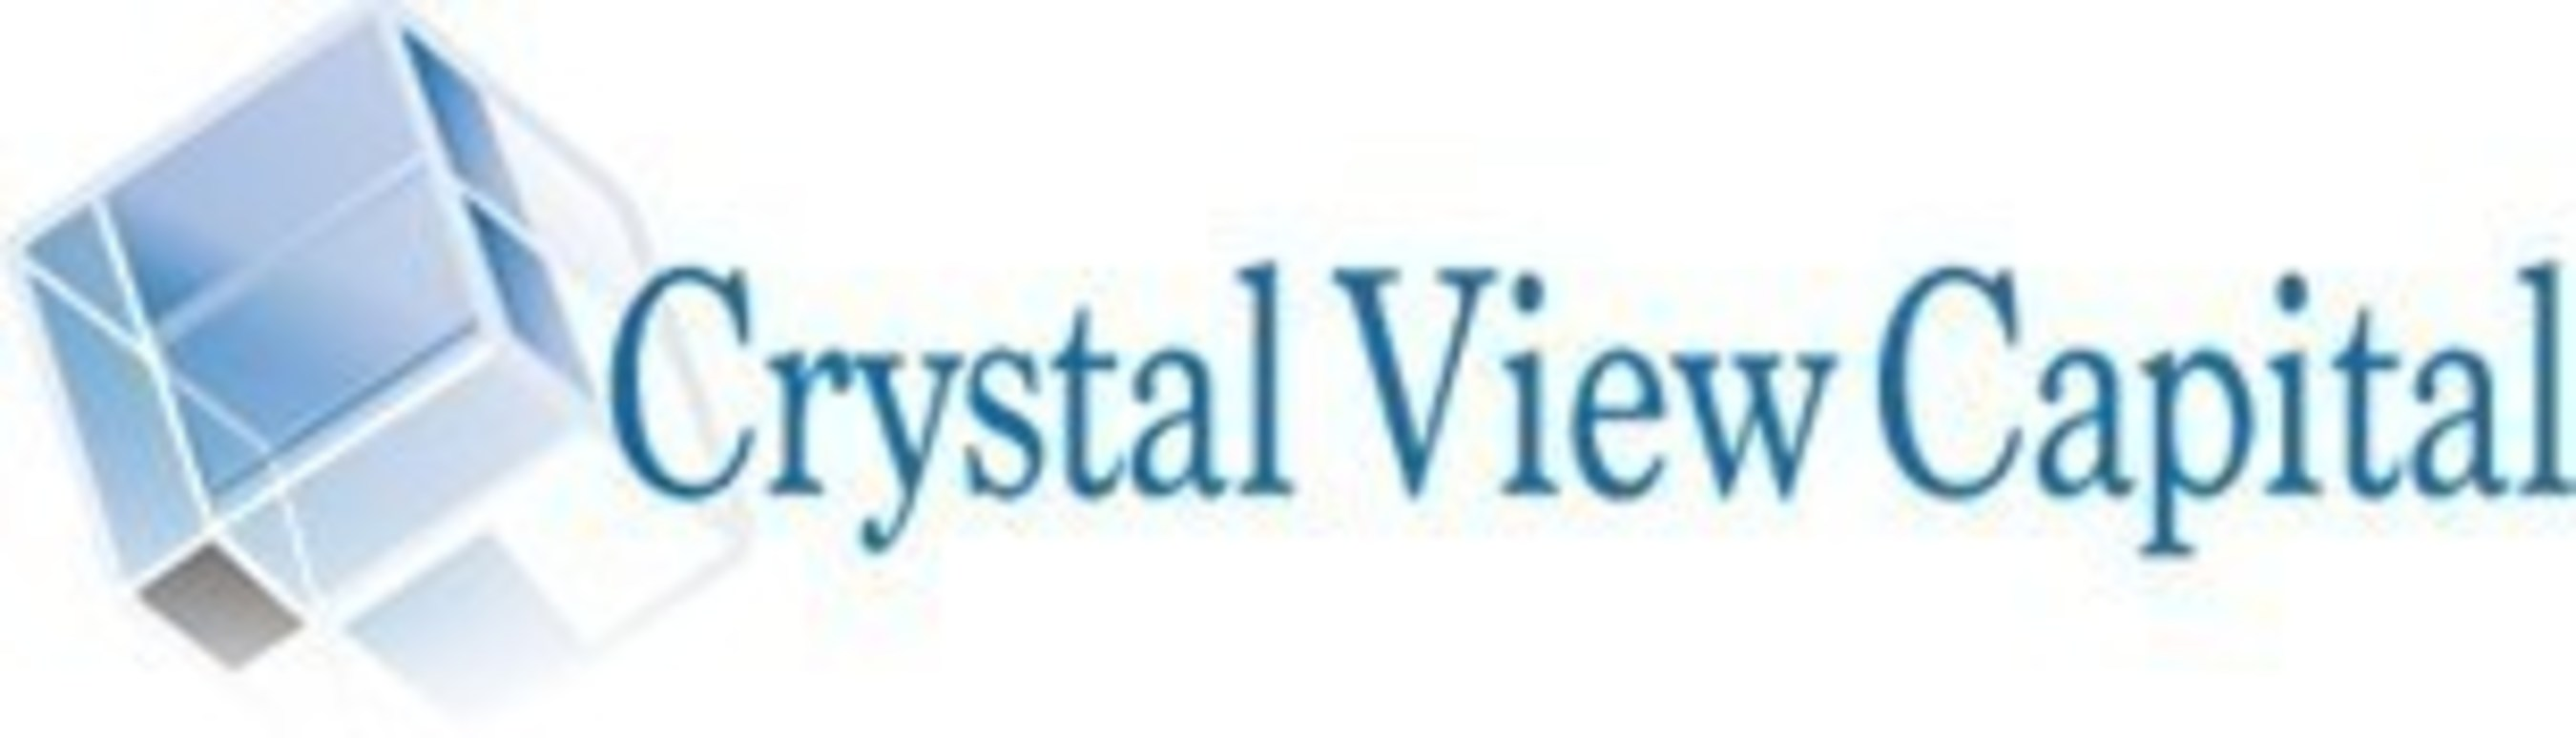 Crystal View Capital Fund I, LLC Board of Directors Pays